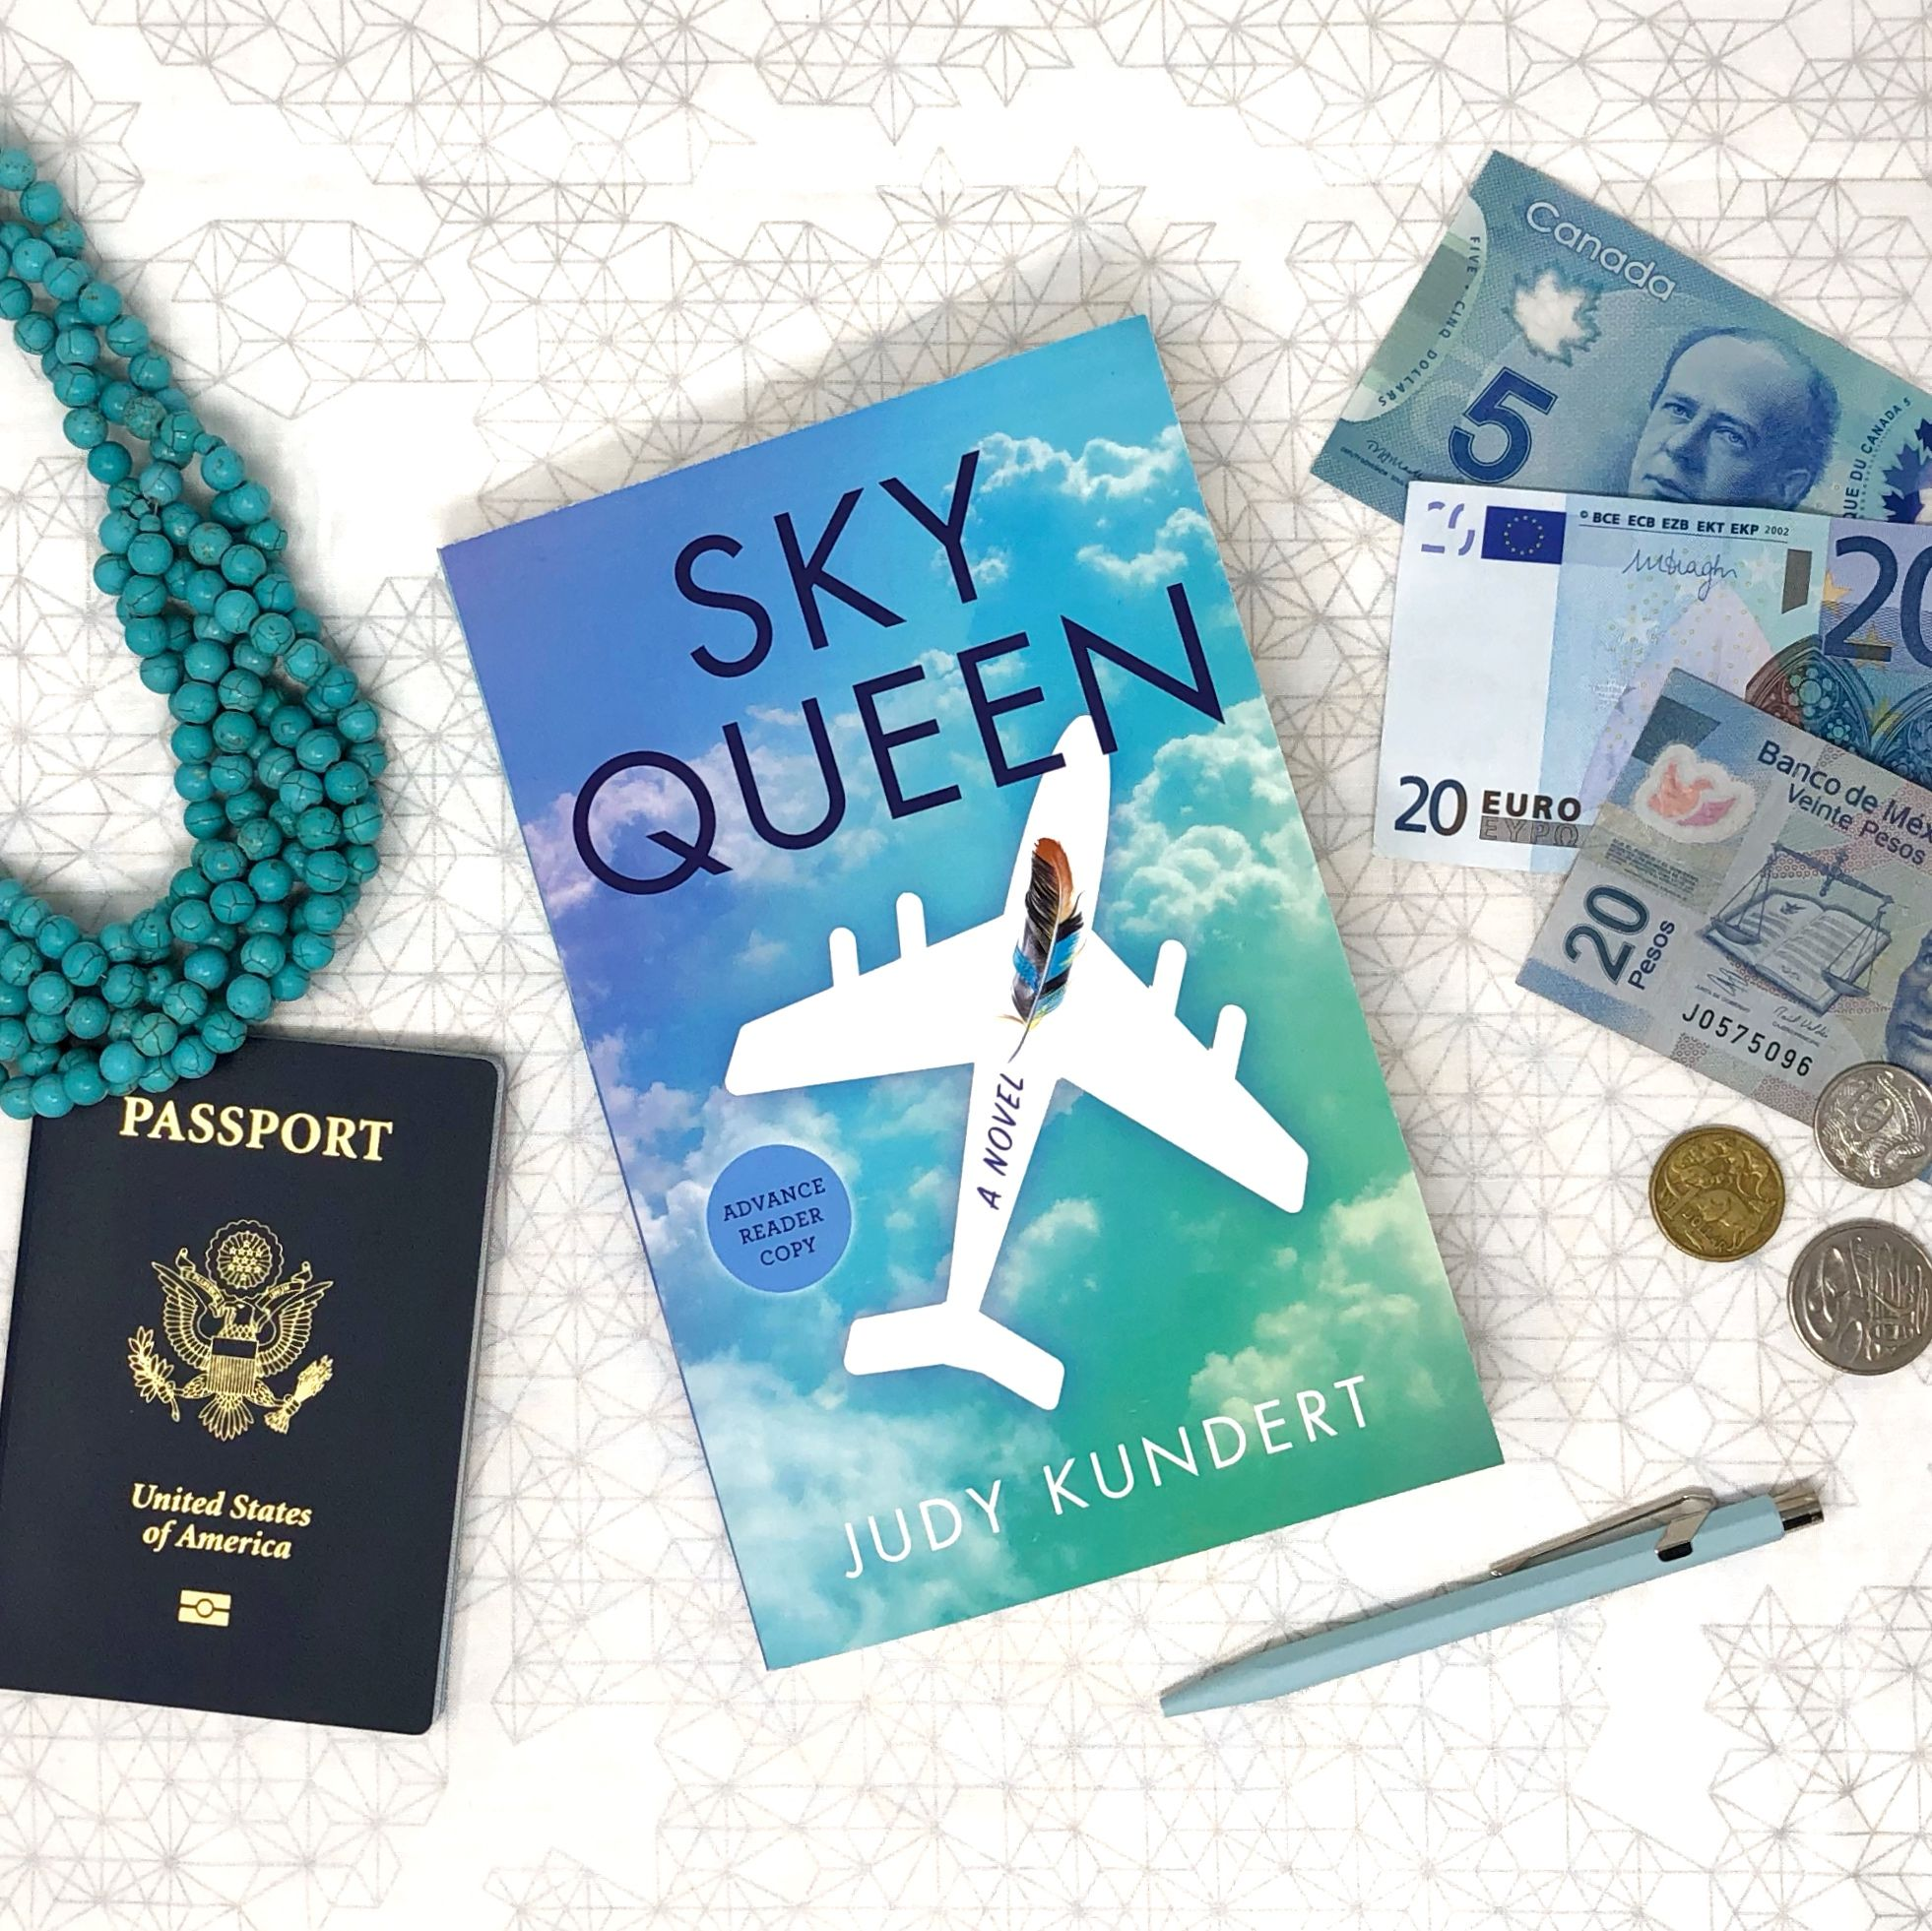 Sky Queen by Judy Kundert. Review by Jessica Mack on Latest Book Crush.